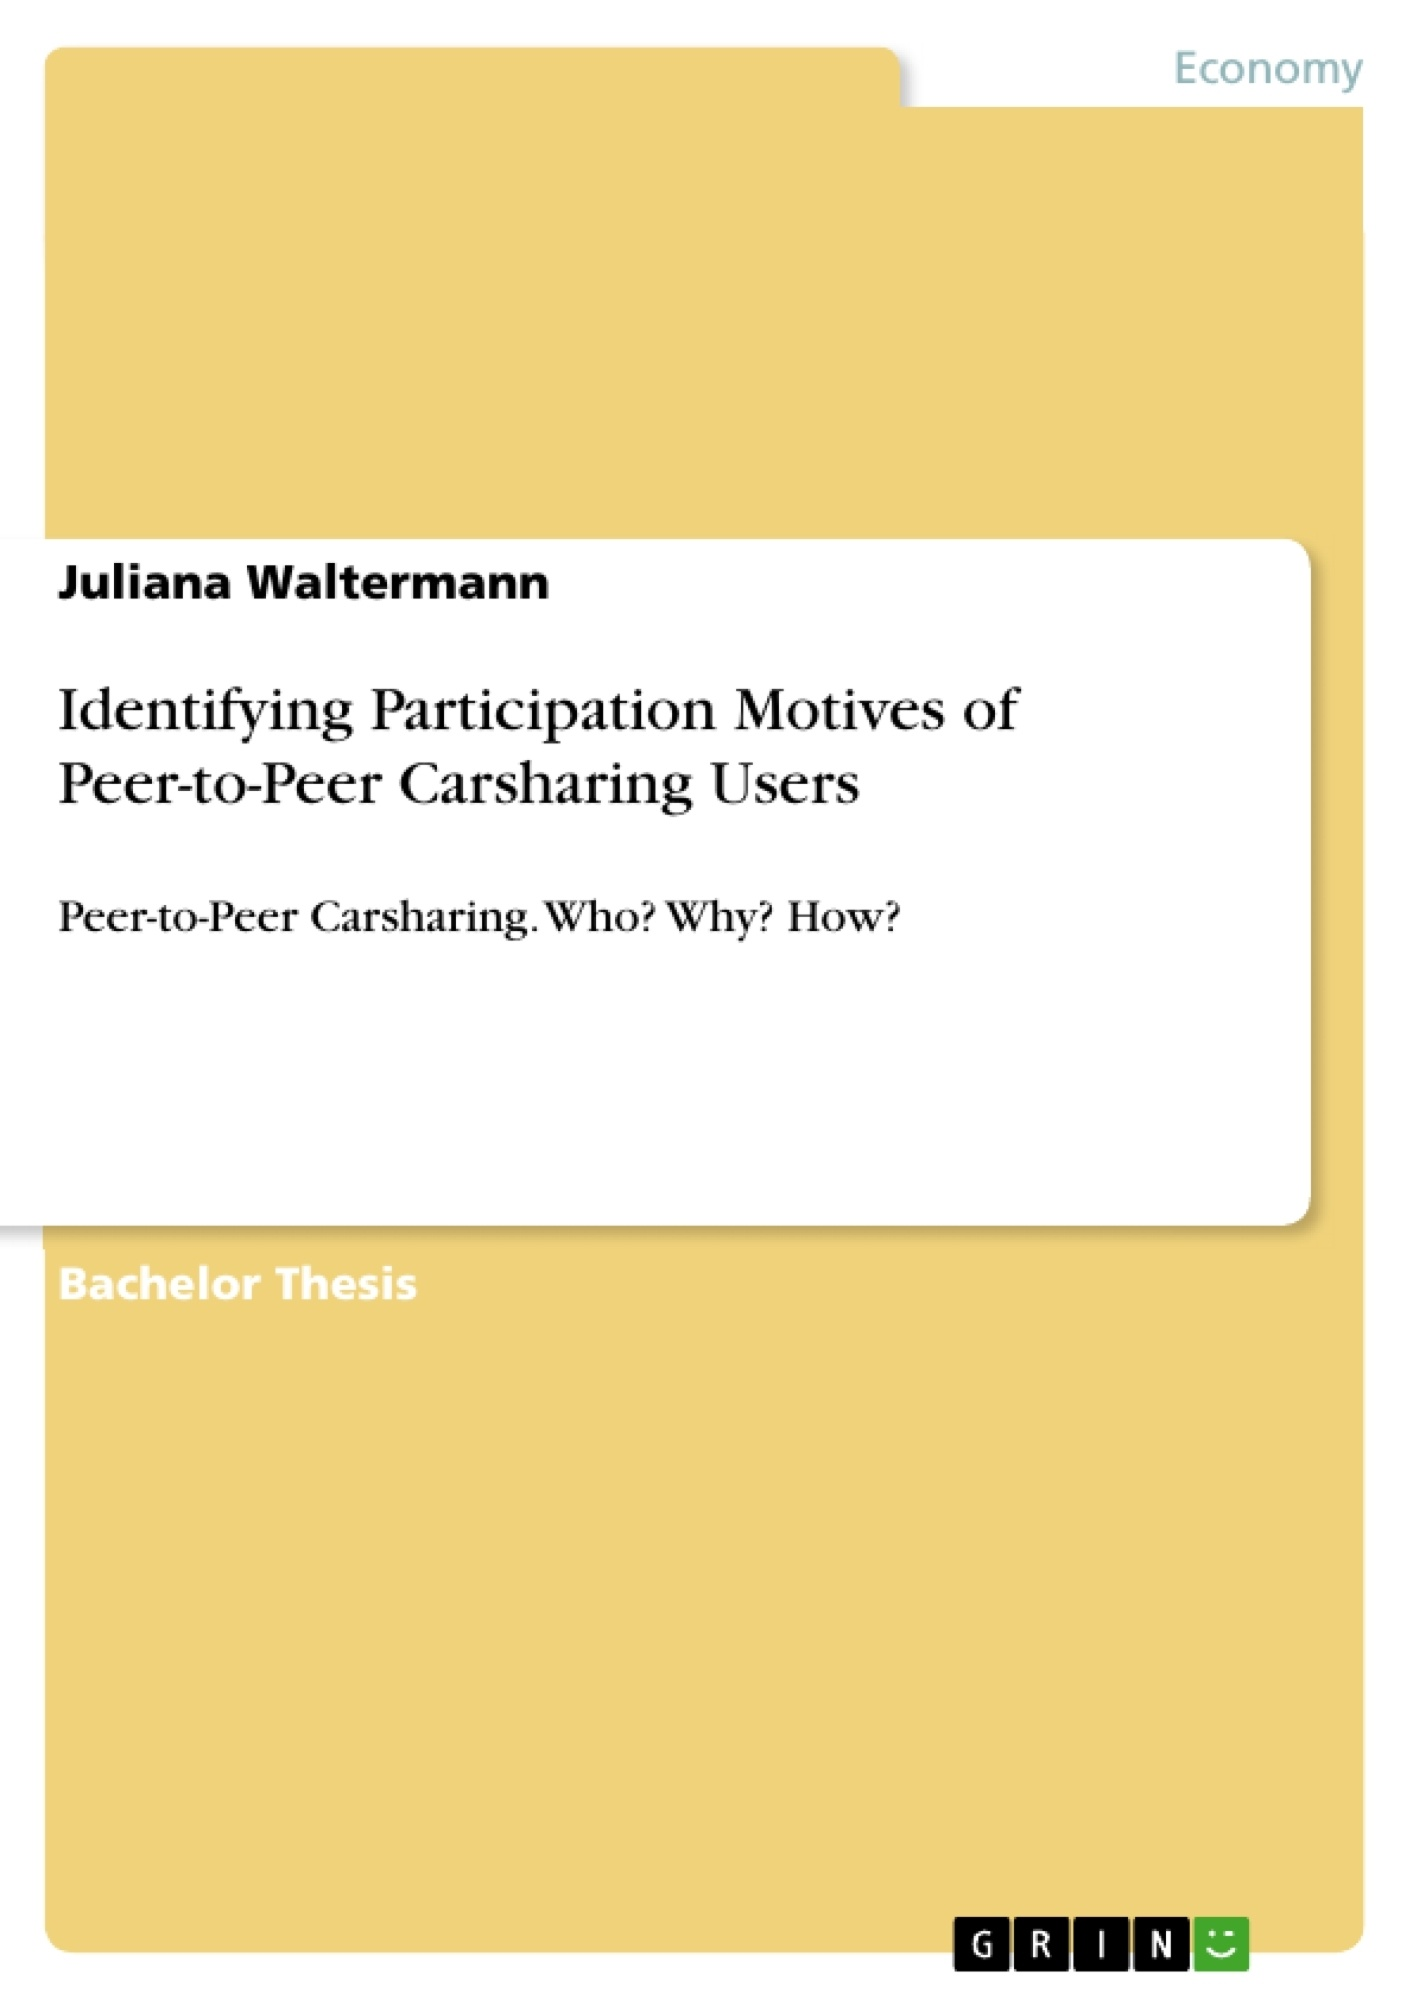 Title: Identifying Participation Motives of Peer-to-Peer Carsharing Users